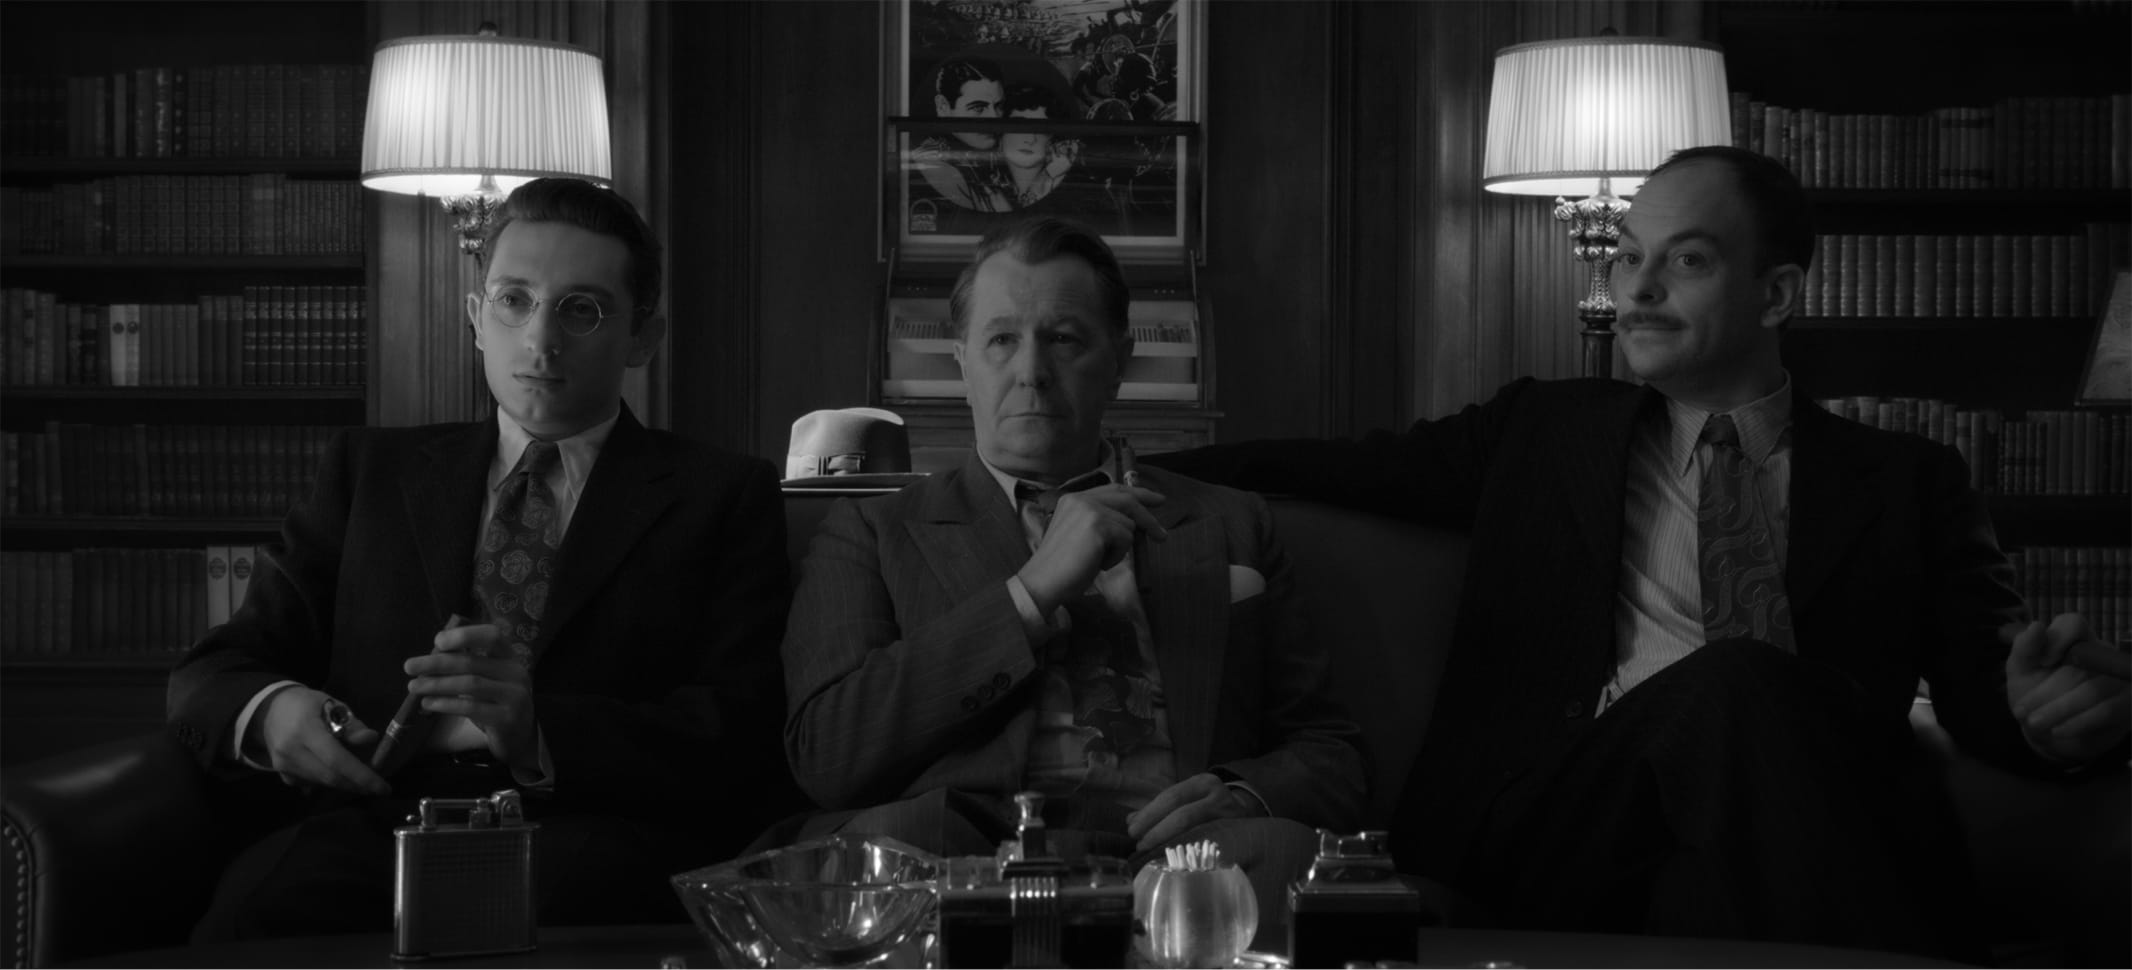 In a shot from the film, we see how the scene above translates to a black-and-white experience. Romano, Oldman, and Hecht are pictured on one of the office couches, framed by two of the office's three lamps.